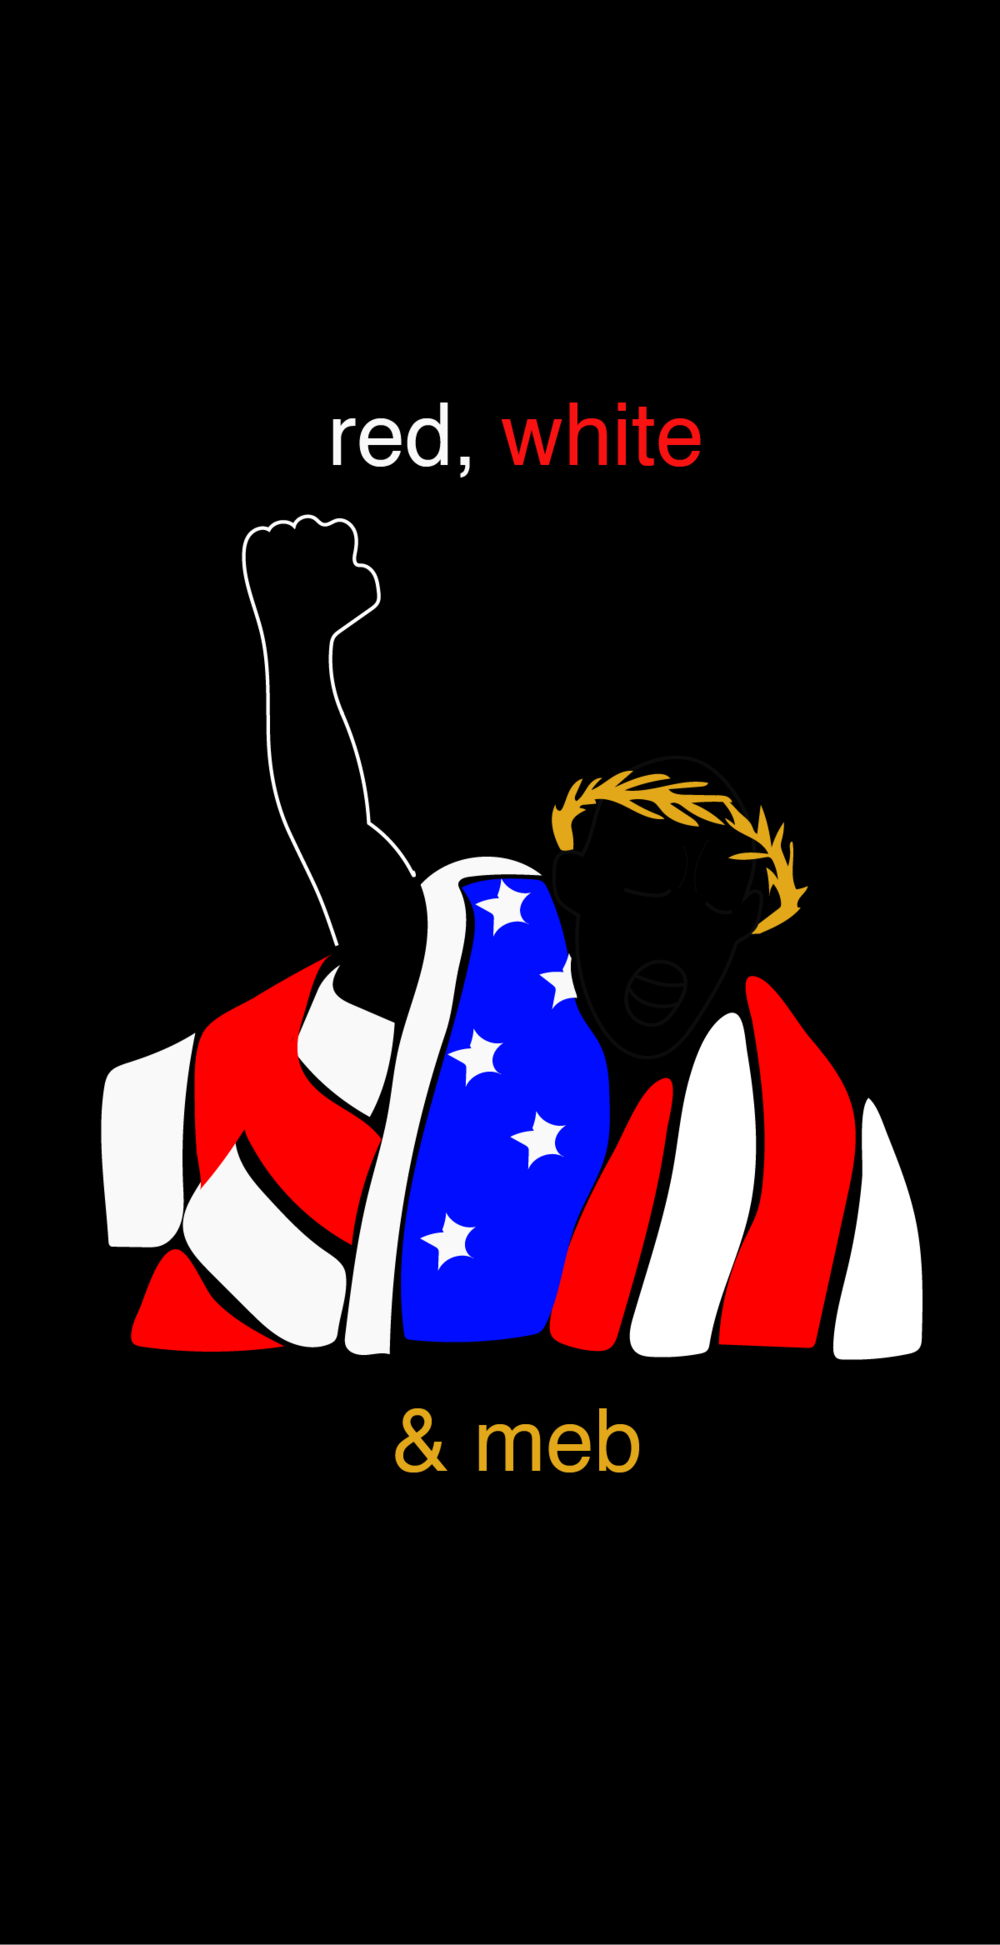 meb.png